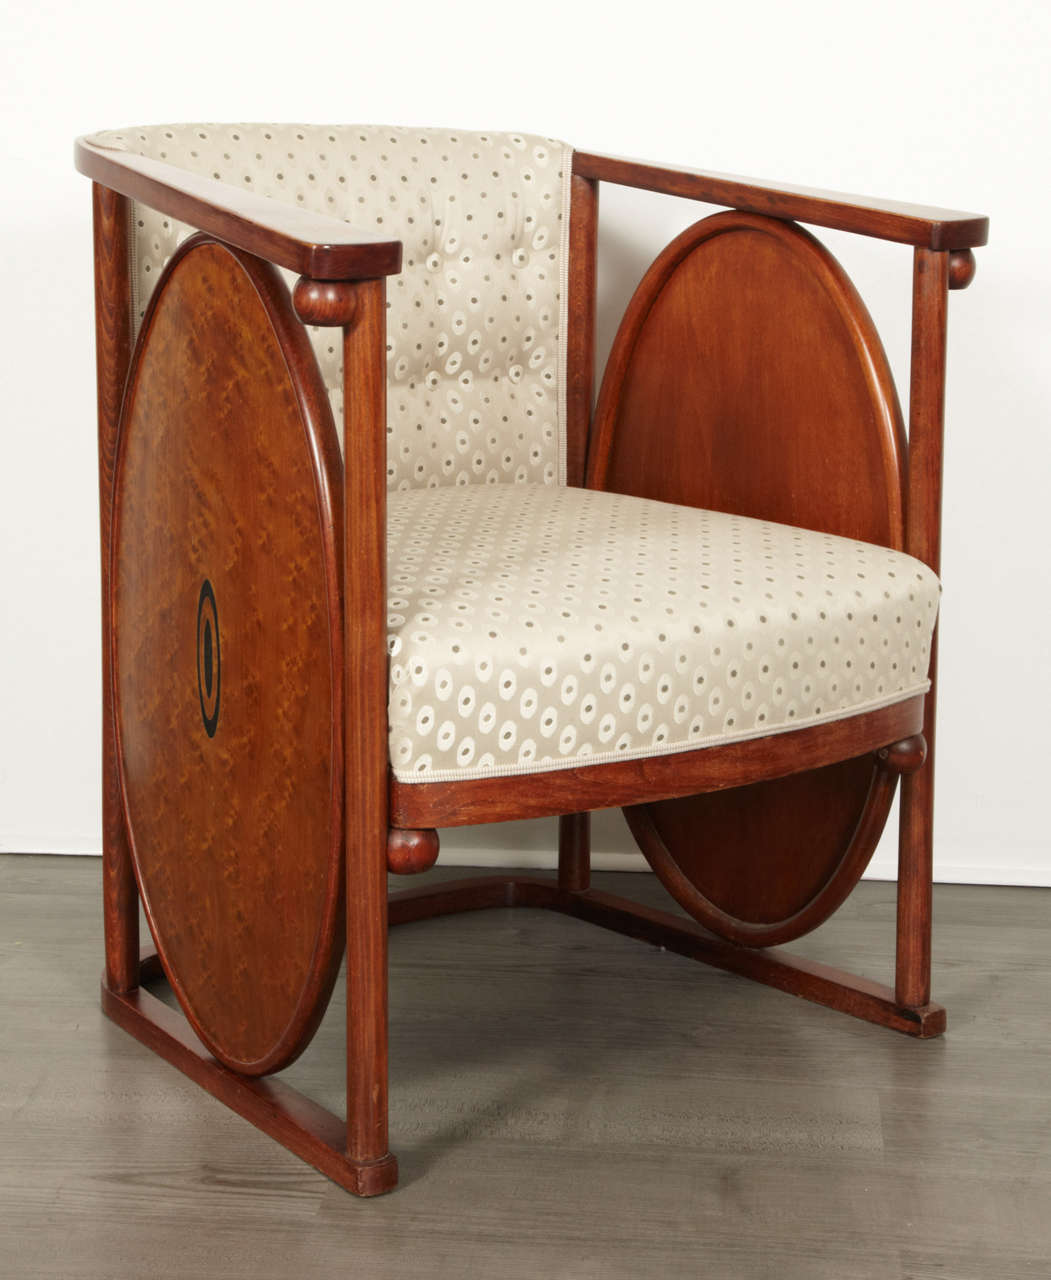 Koloman Moser (1868-1918) and Josef Hoffmann (1870-1956). Bent and polished beech and plywood, dyed to rosewood, brass inlays, renewed upholstery. Measures: Height 70 cm (27.5 in.), width 73 cm (28.7 in.), depth 66 cm (26 in.).